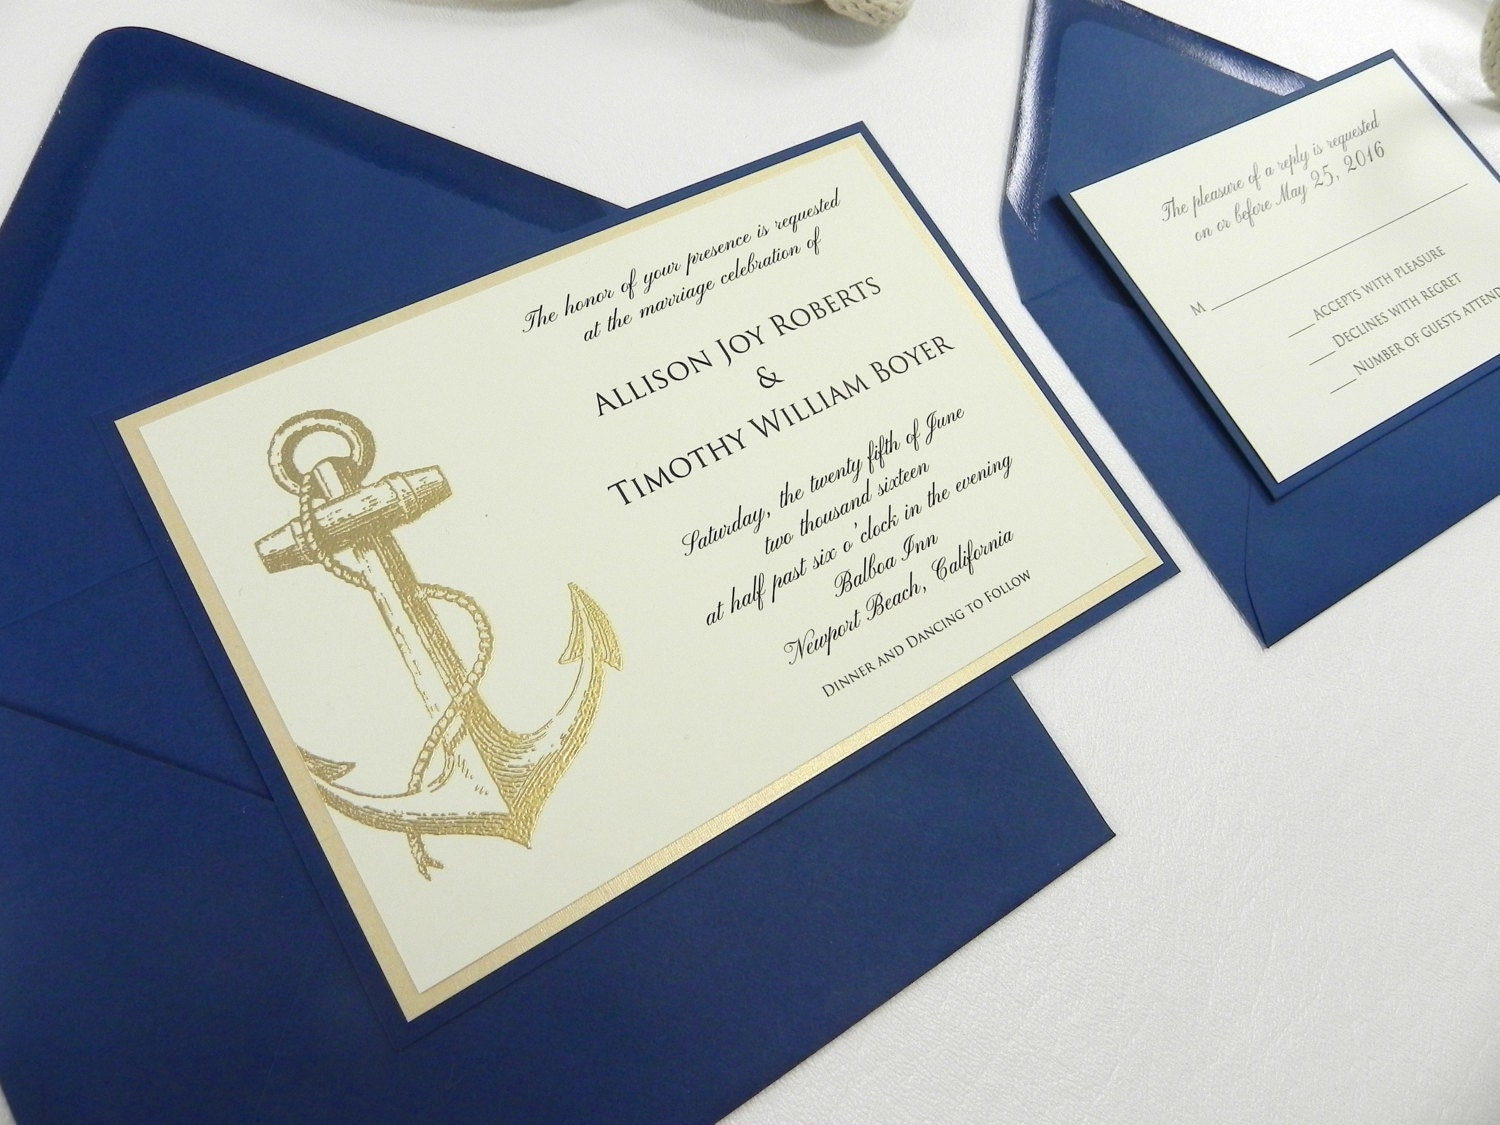 Wedding Invitations Nautical Theme: Nautical Wedding Invitation 4 PC Suite With Gold Embossed